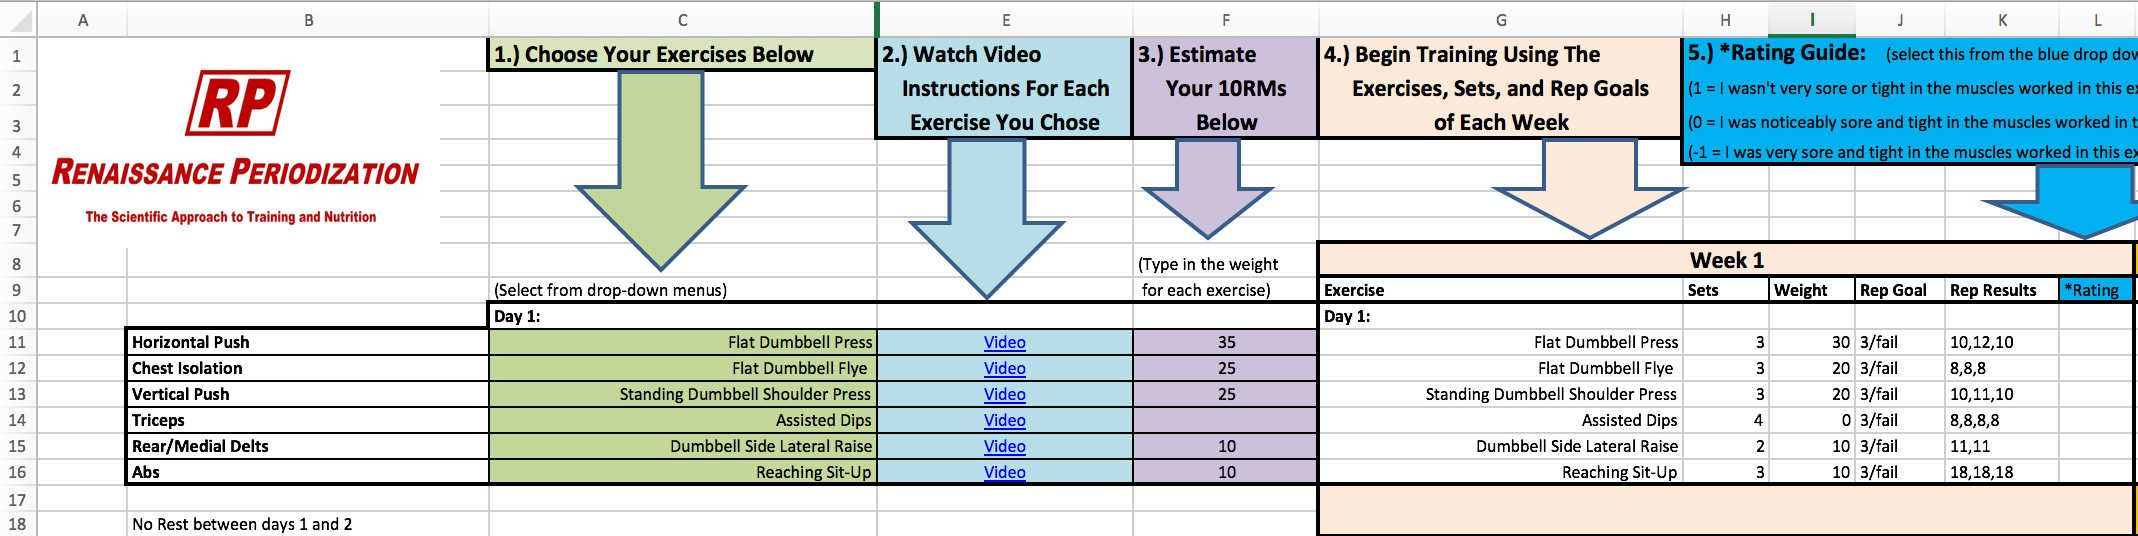 Strength Training My Current Program Workout Template Strength